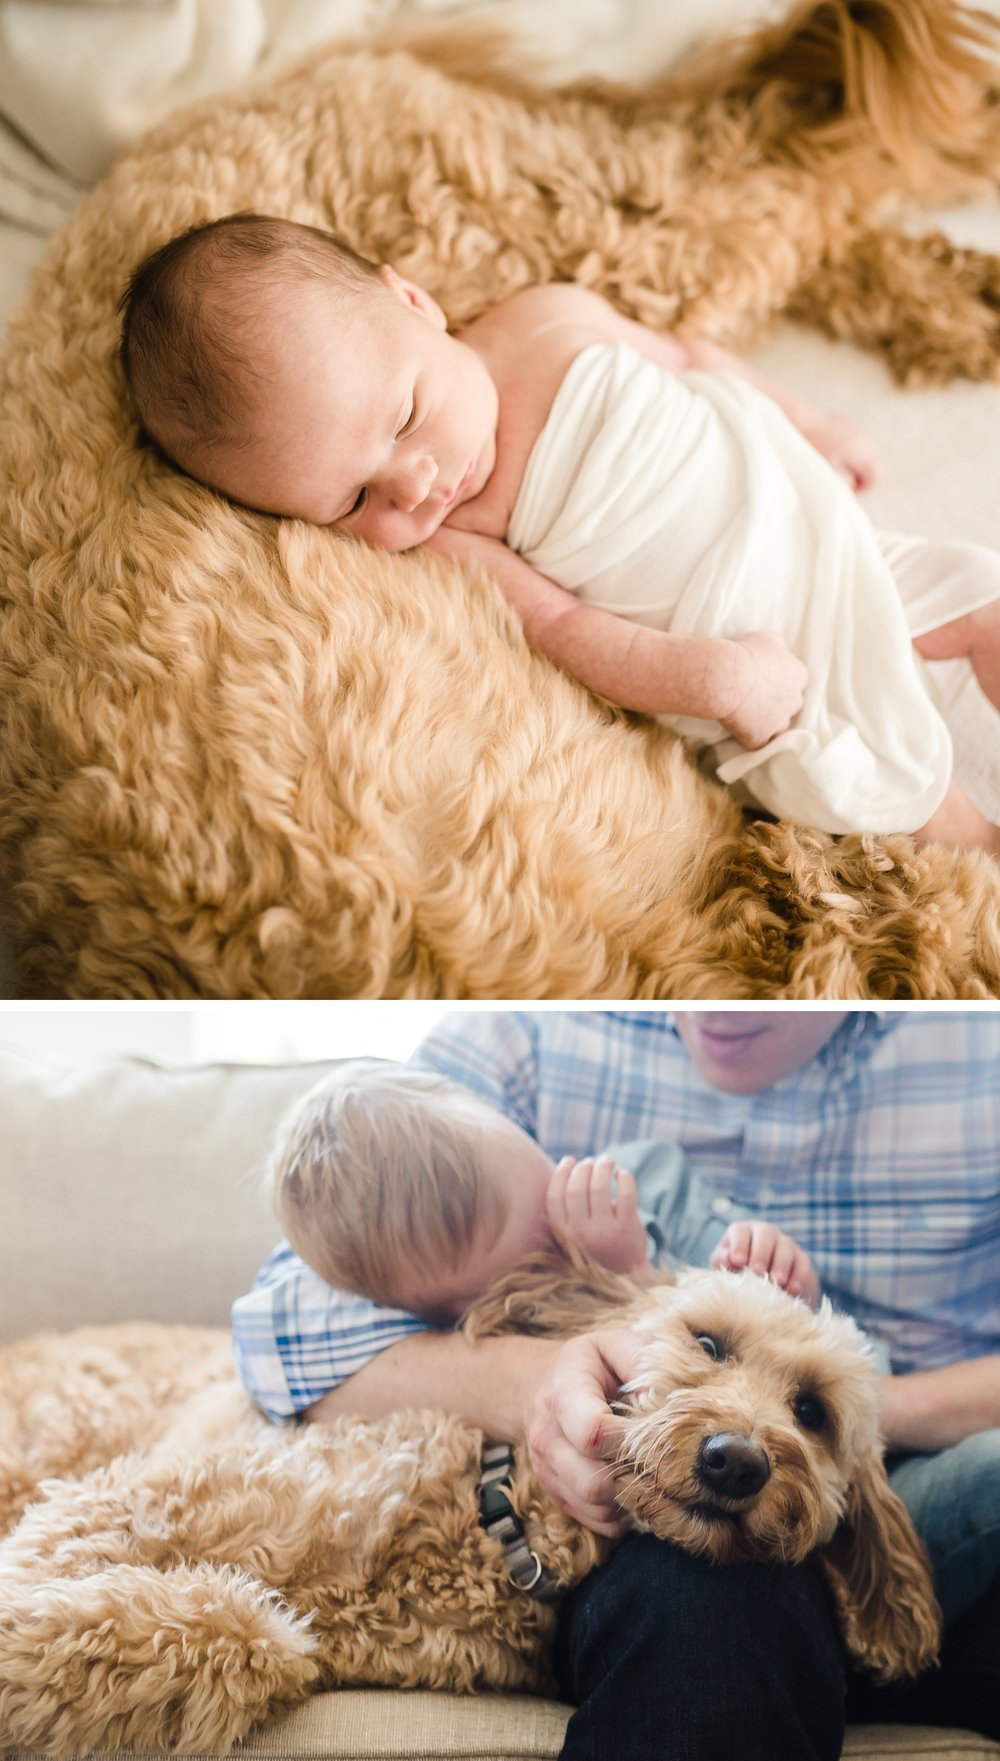 chicago-newborn-modern-lifestyle-photographer-jenny-grimm-photography_0003.jpg